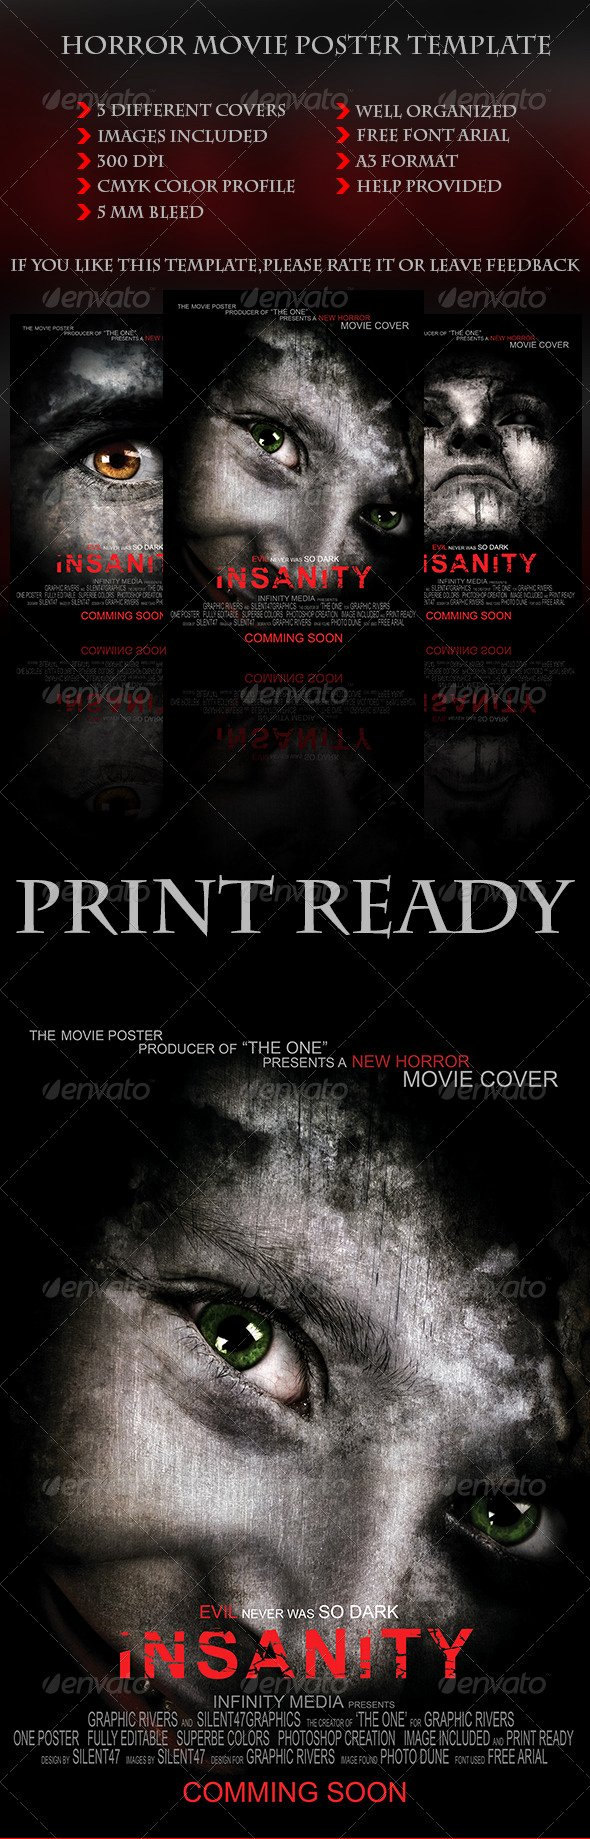 Horror Movie Poster Template Lovely Horror Movie Poster Template by Silentgraphics